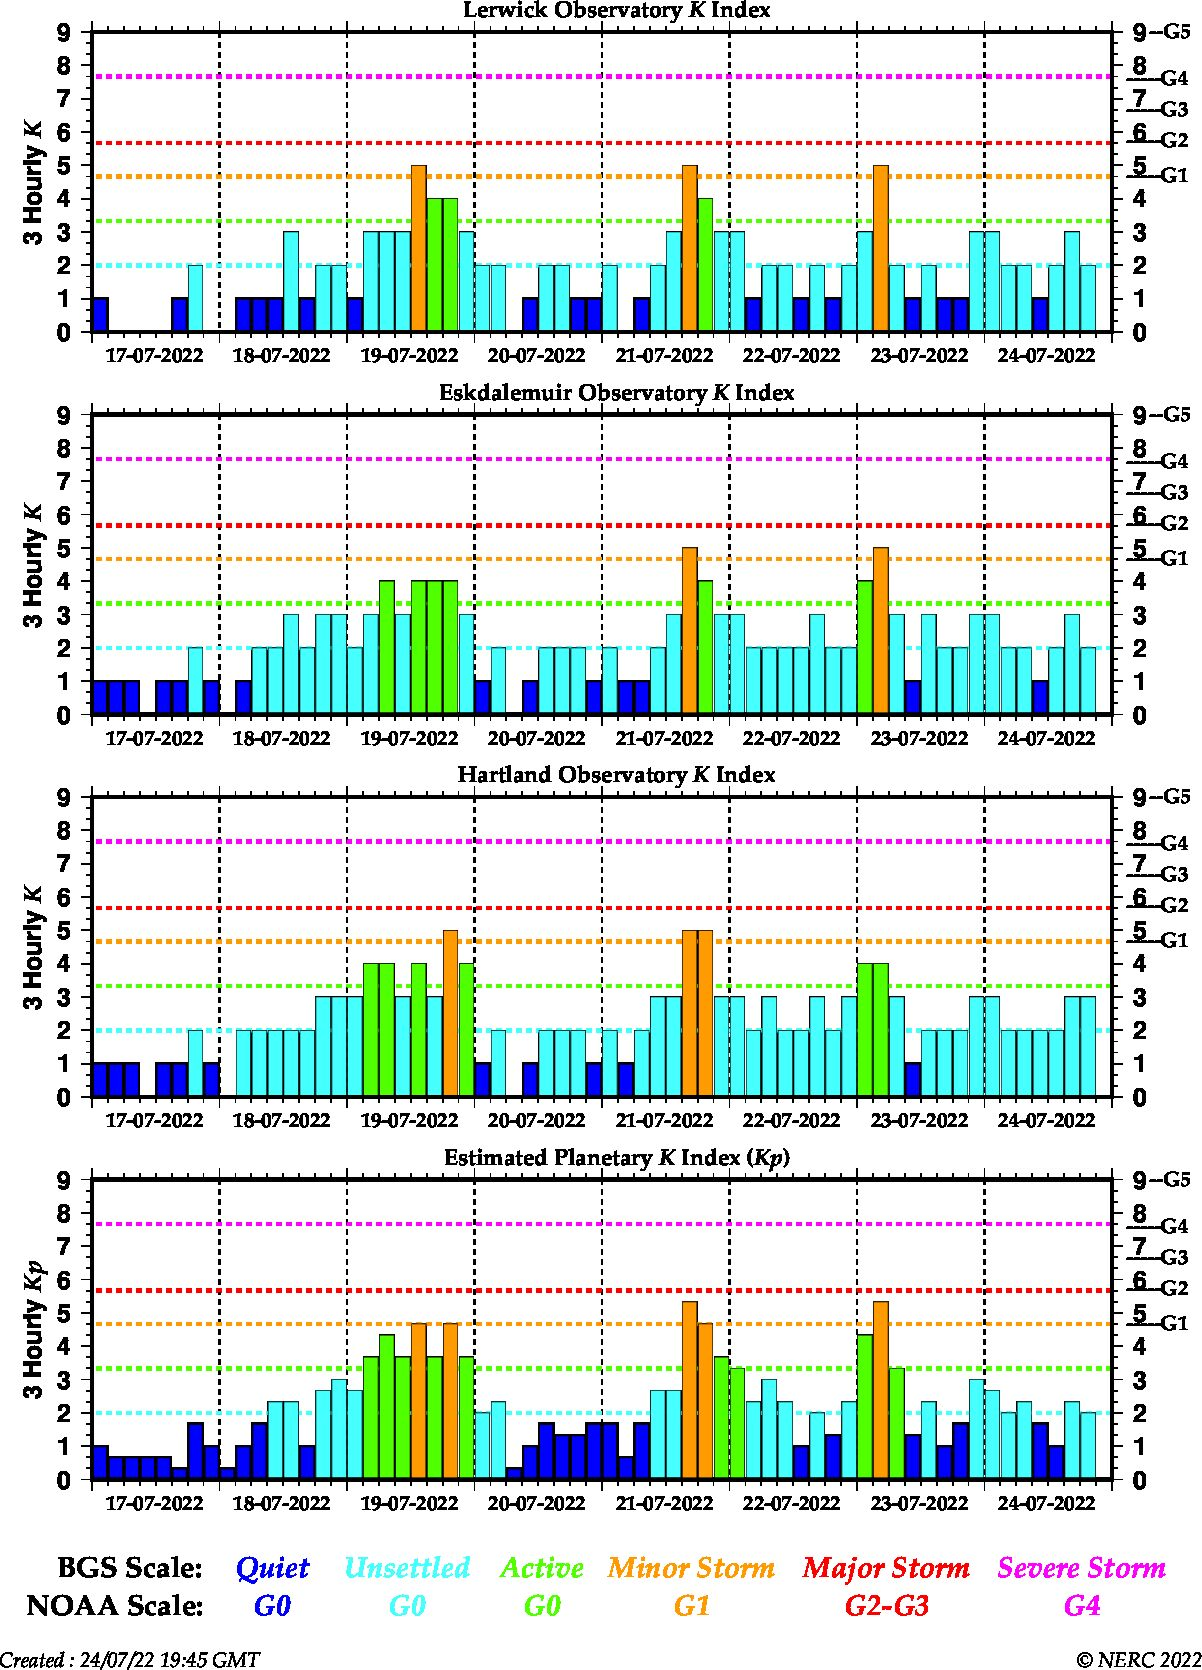 Chart showing the current and recent geomagnetic activity in the UK and globally. The K-index values for the 3 UK observatories and the estimated global Kp is shown.